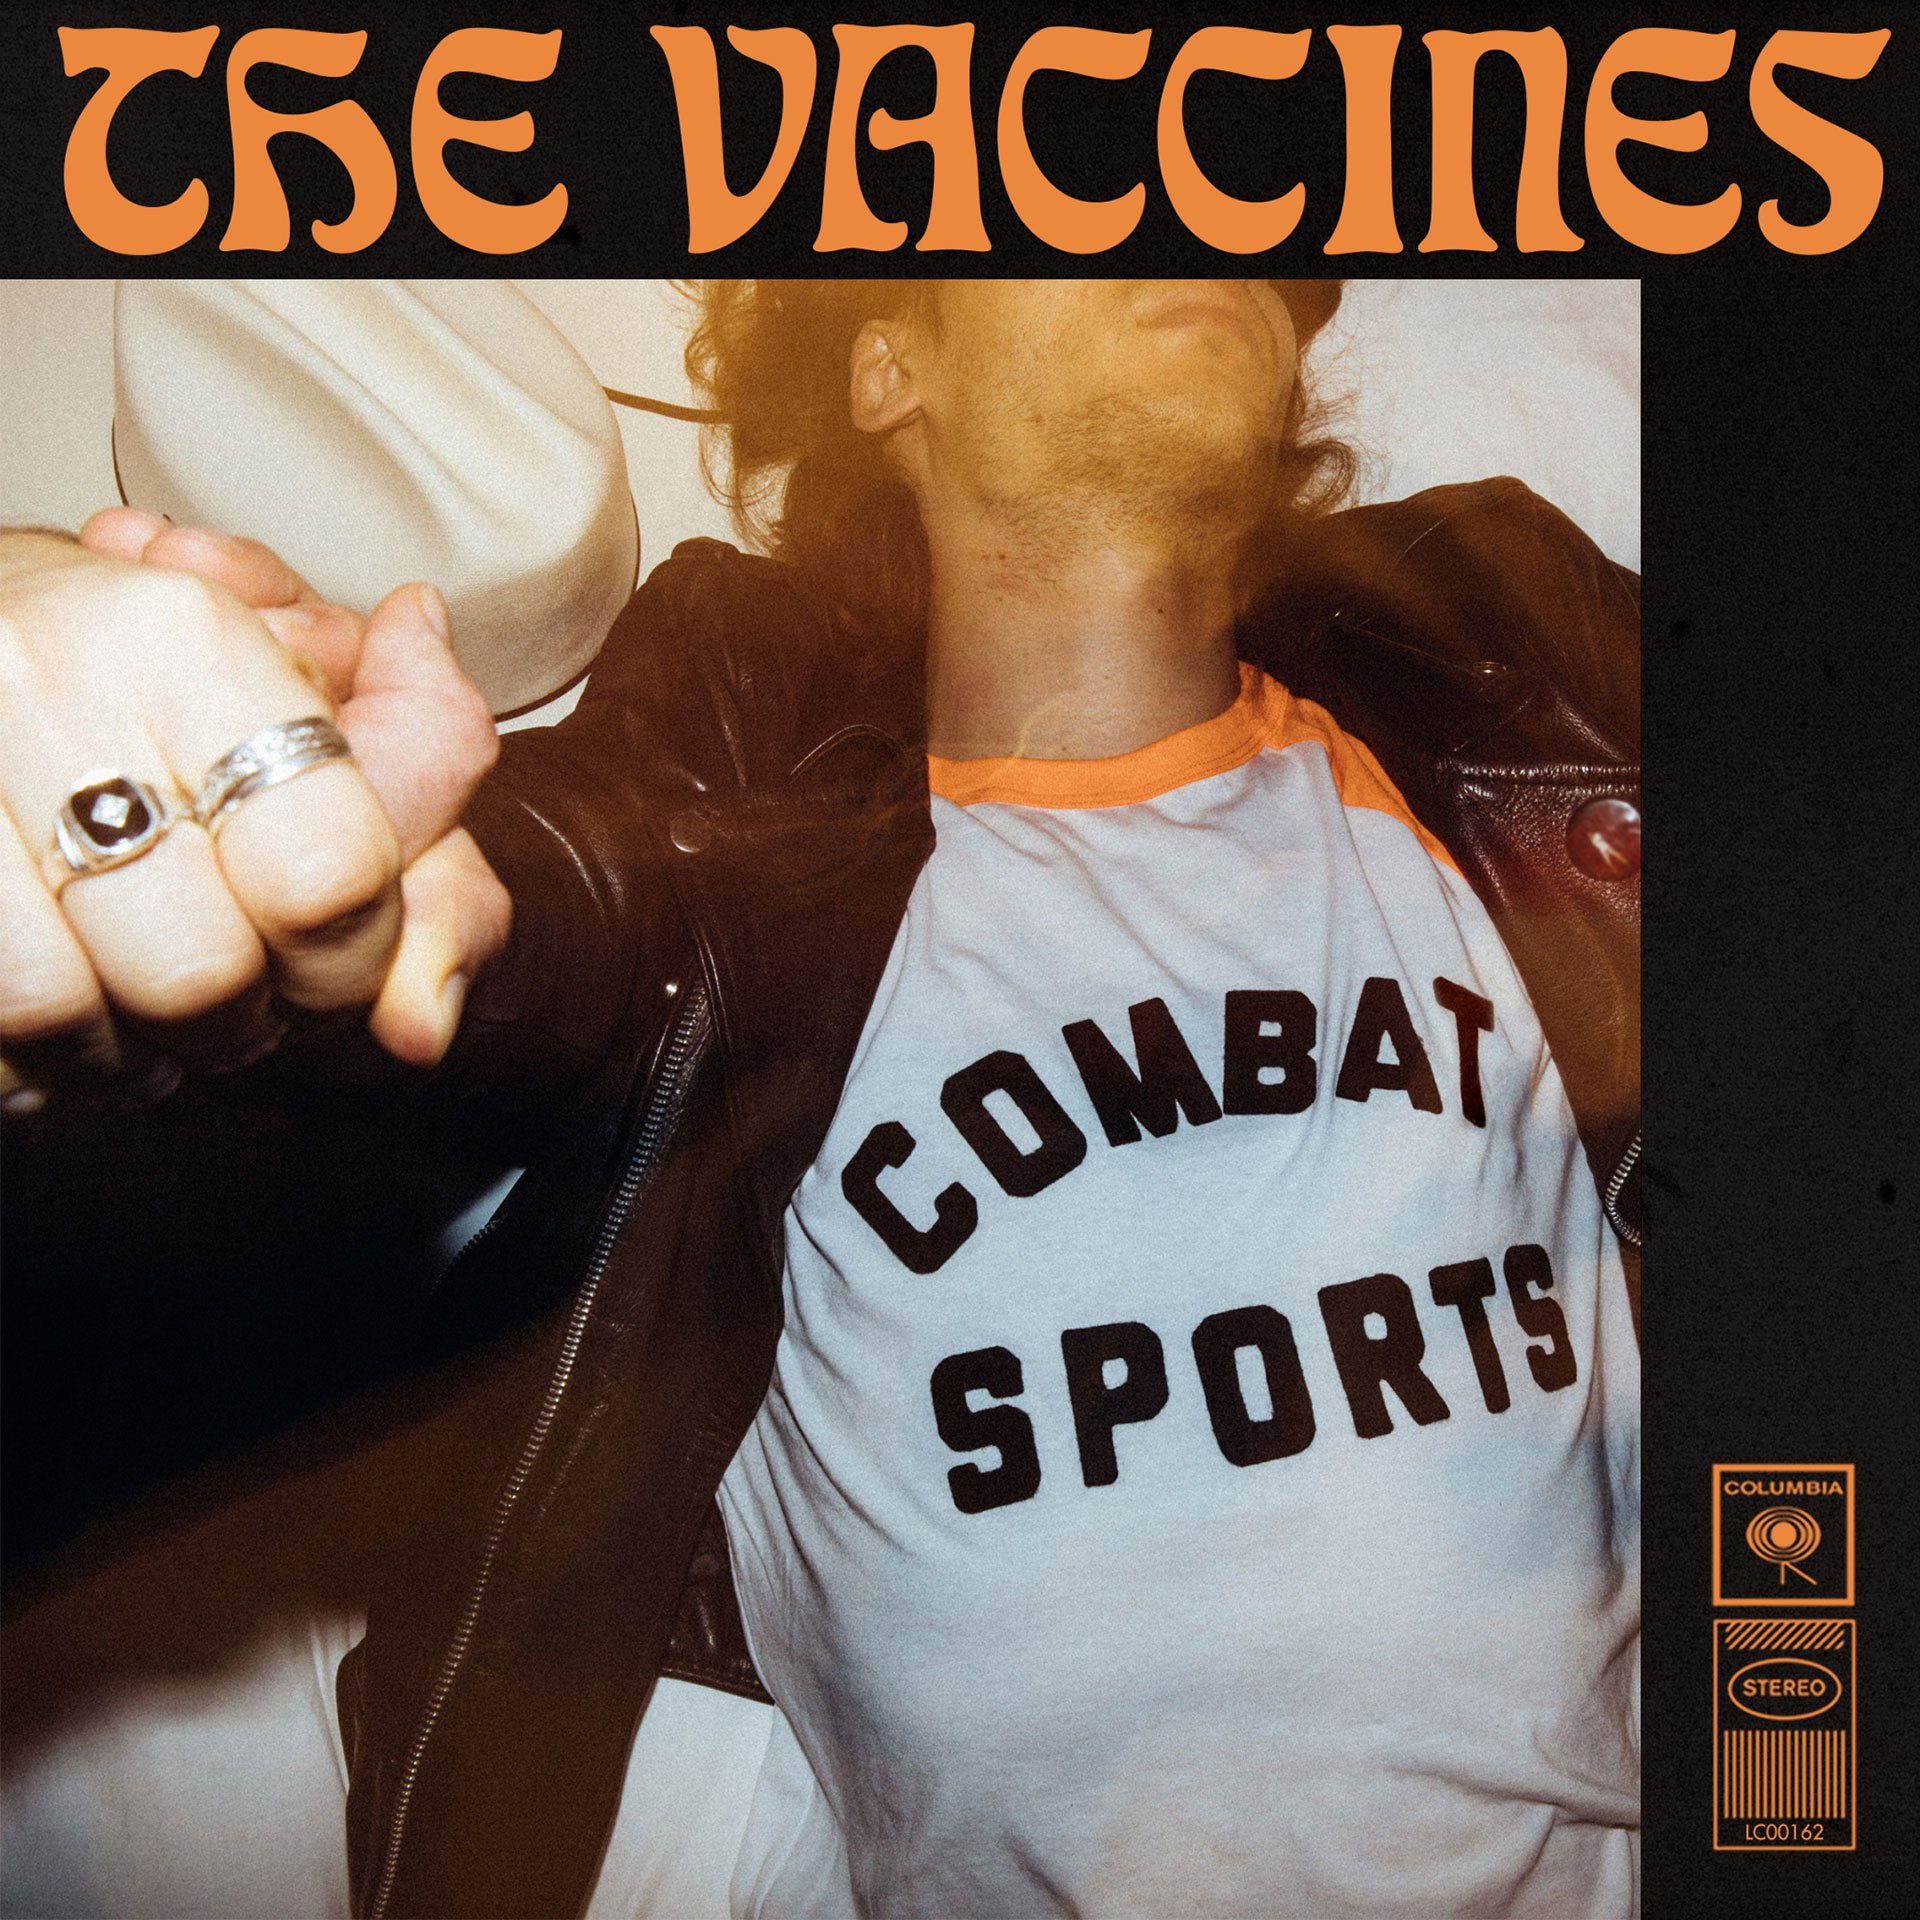 The Vaccines album cover for their fourth album, Combat Sports.